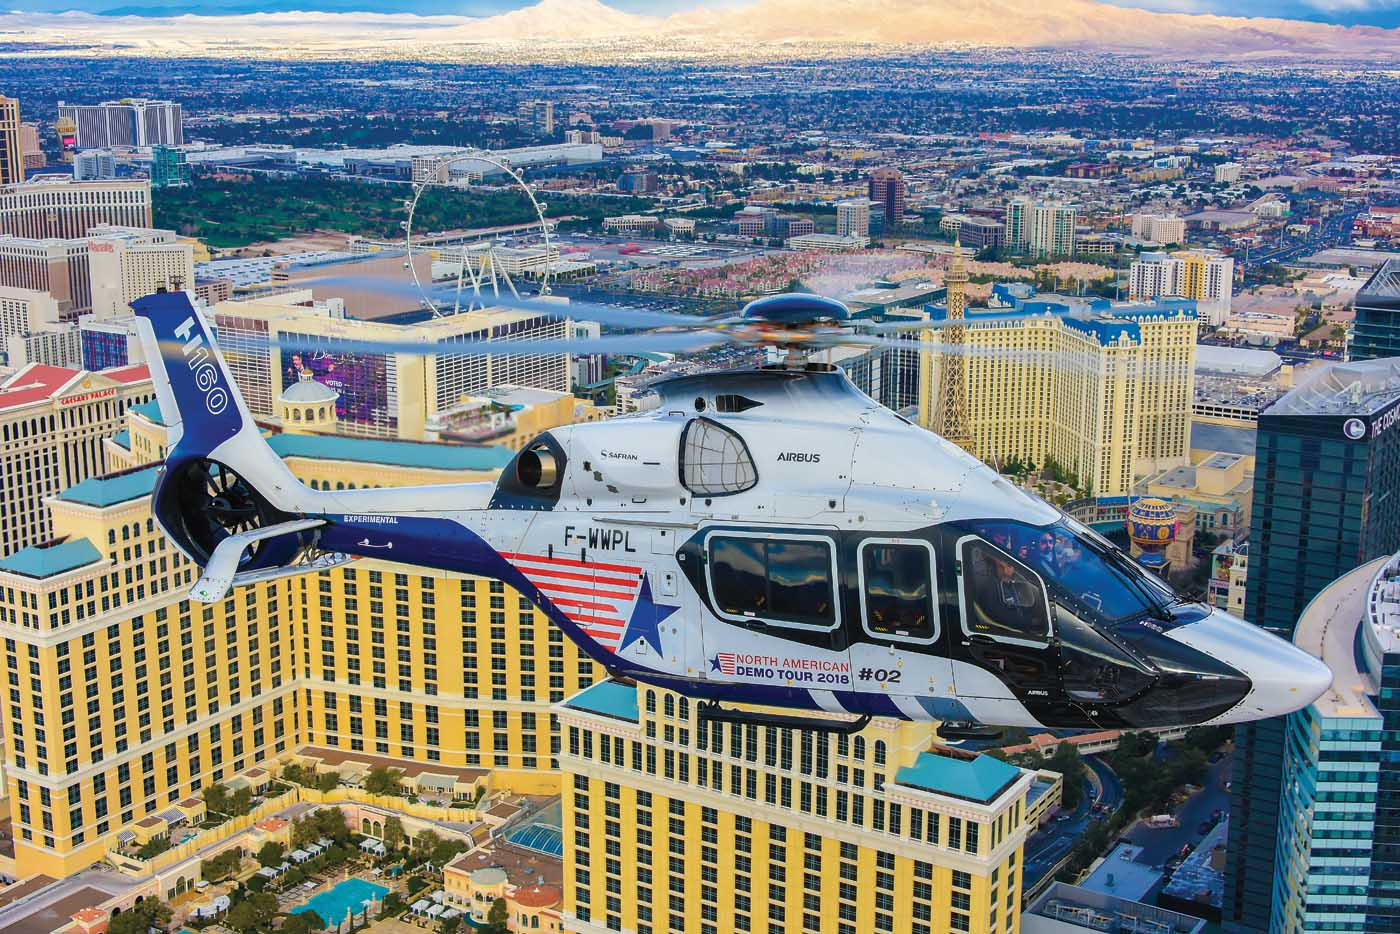 Inside the H160, middleweight contender - Vertical Magazine